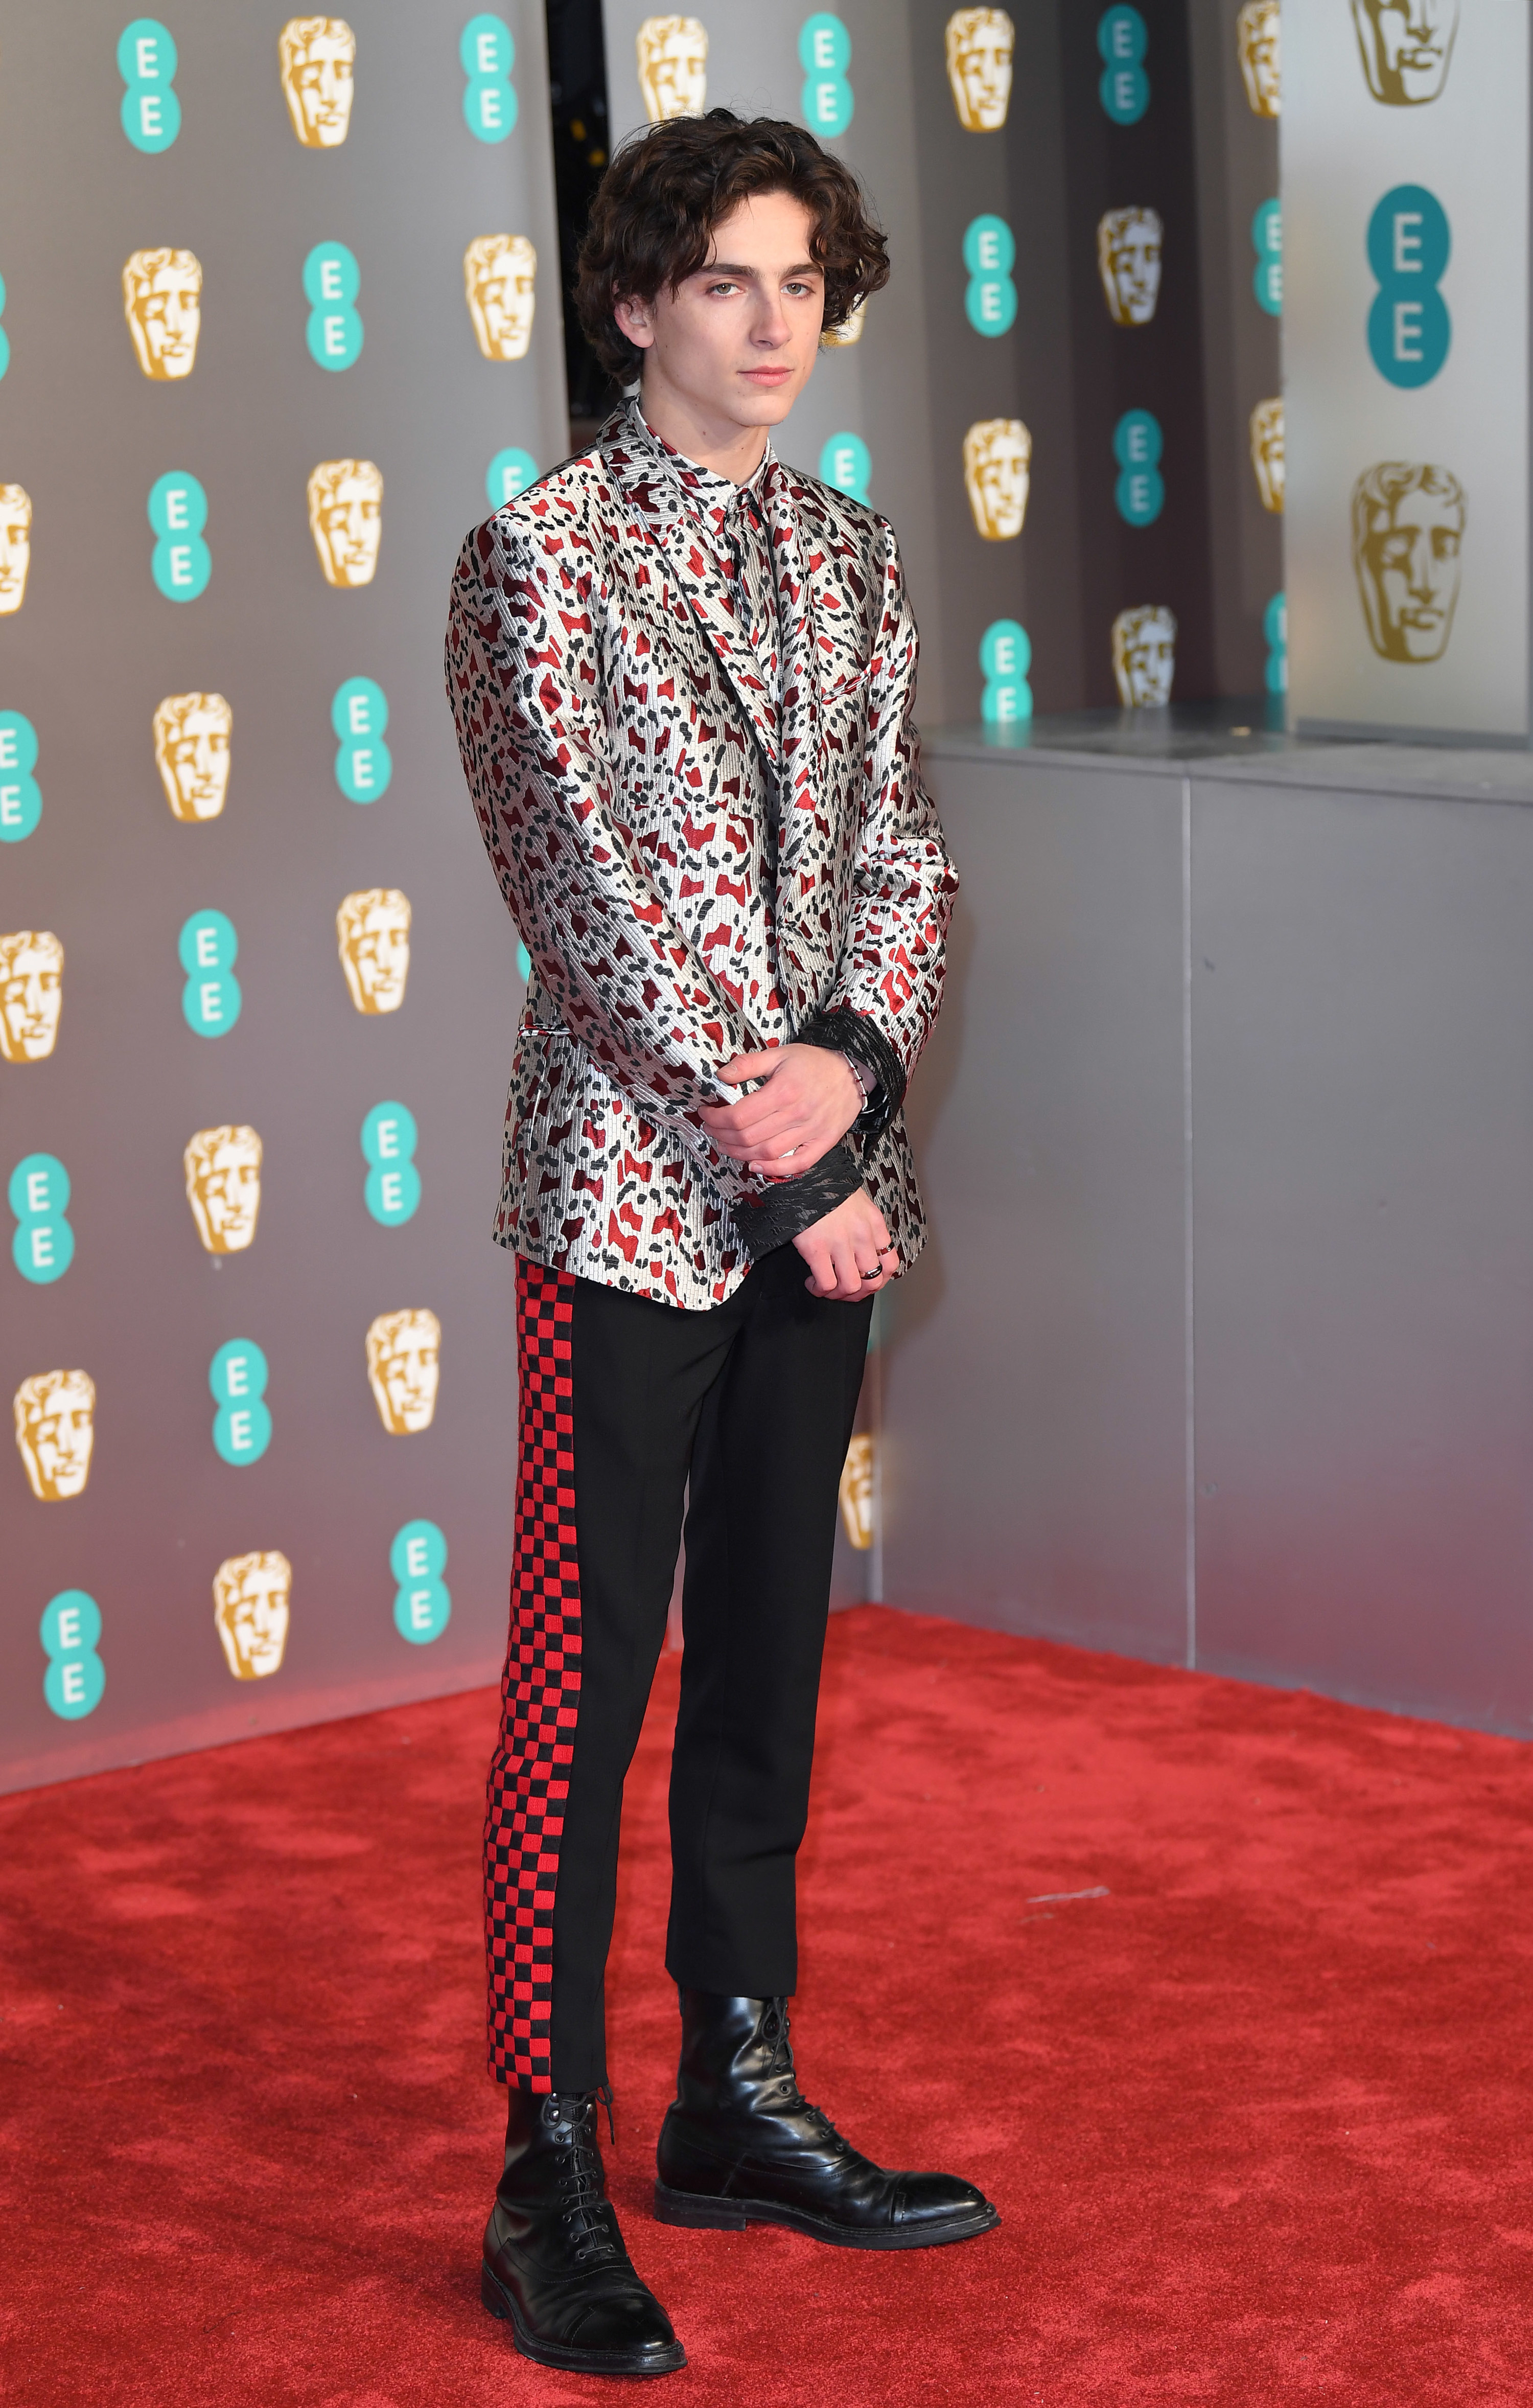 Timothée wears a grey and red patterned suit and black pants with red checkered detailing on the side